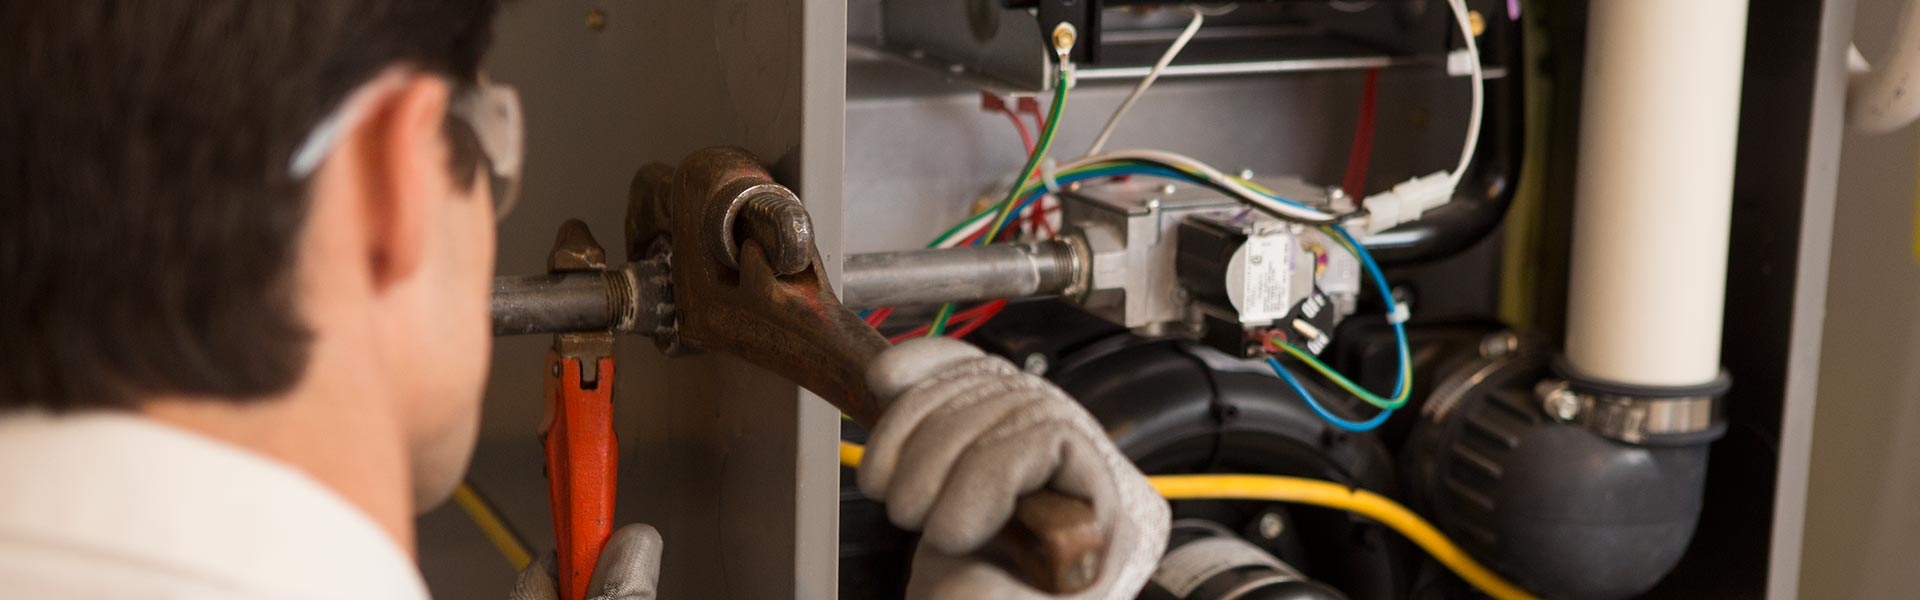 hight resolution of heating system wiring